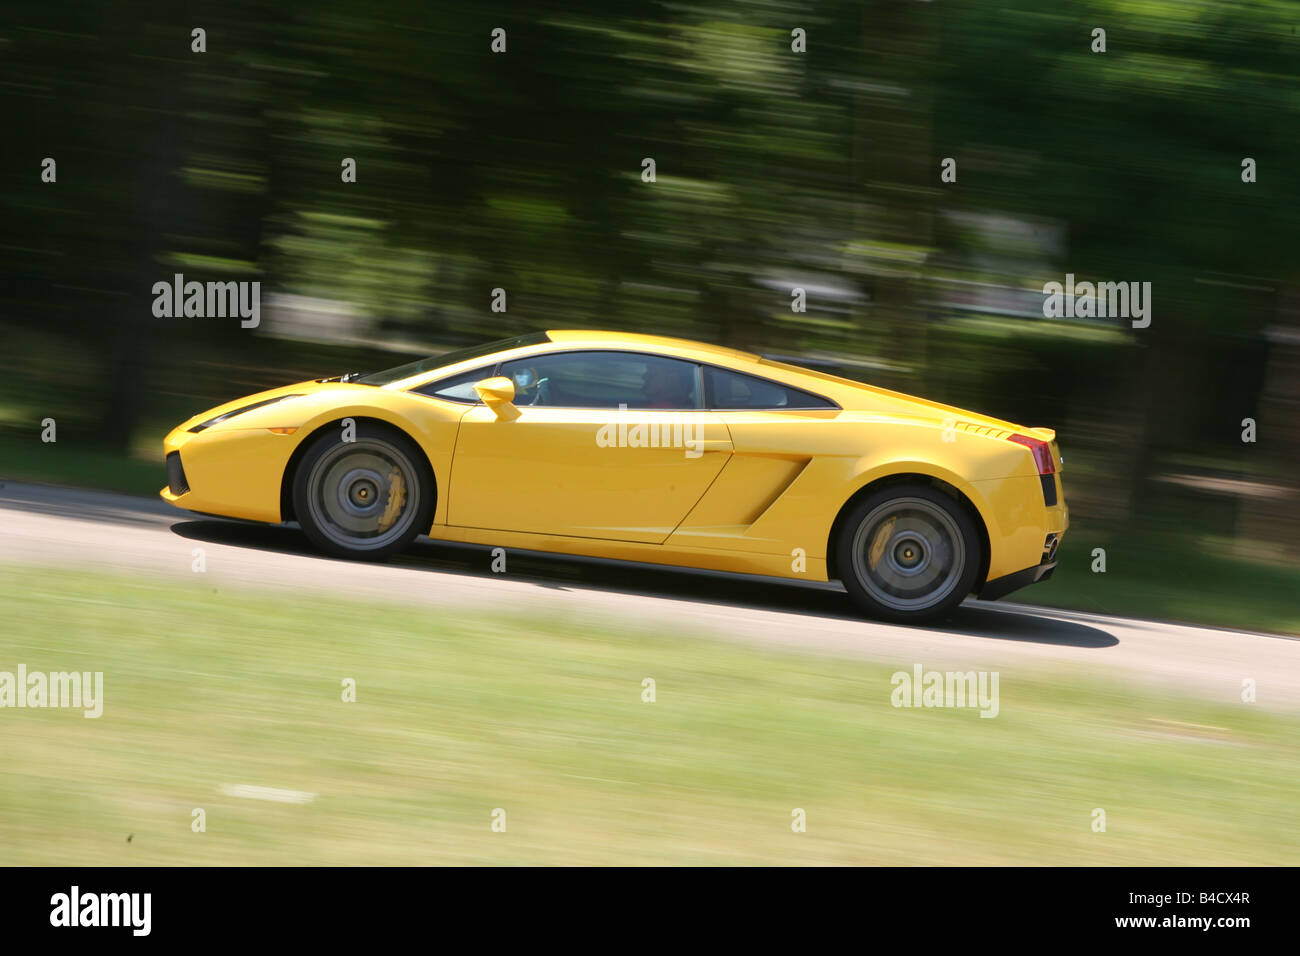 Lamborghini Gallardo, Model Year 2005 , Yellow, Driving, Side View, Road